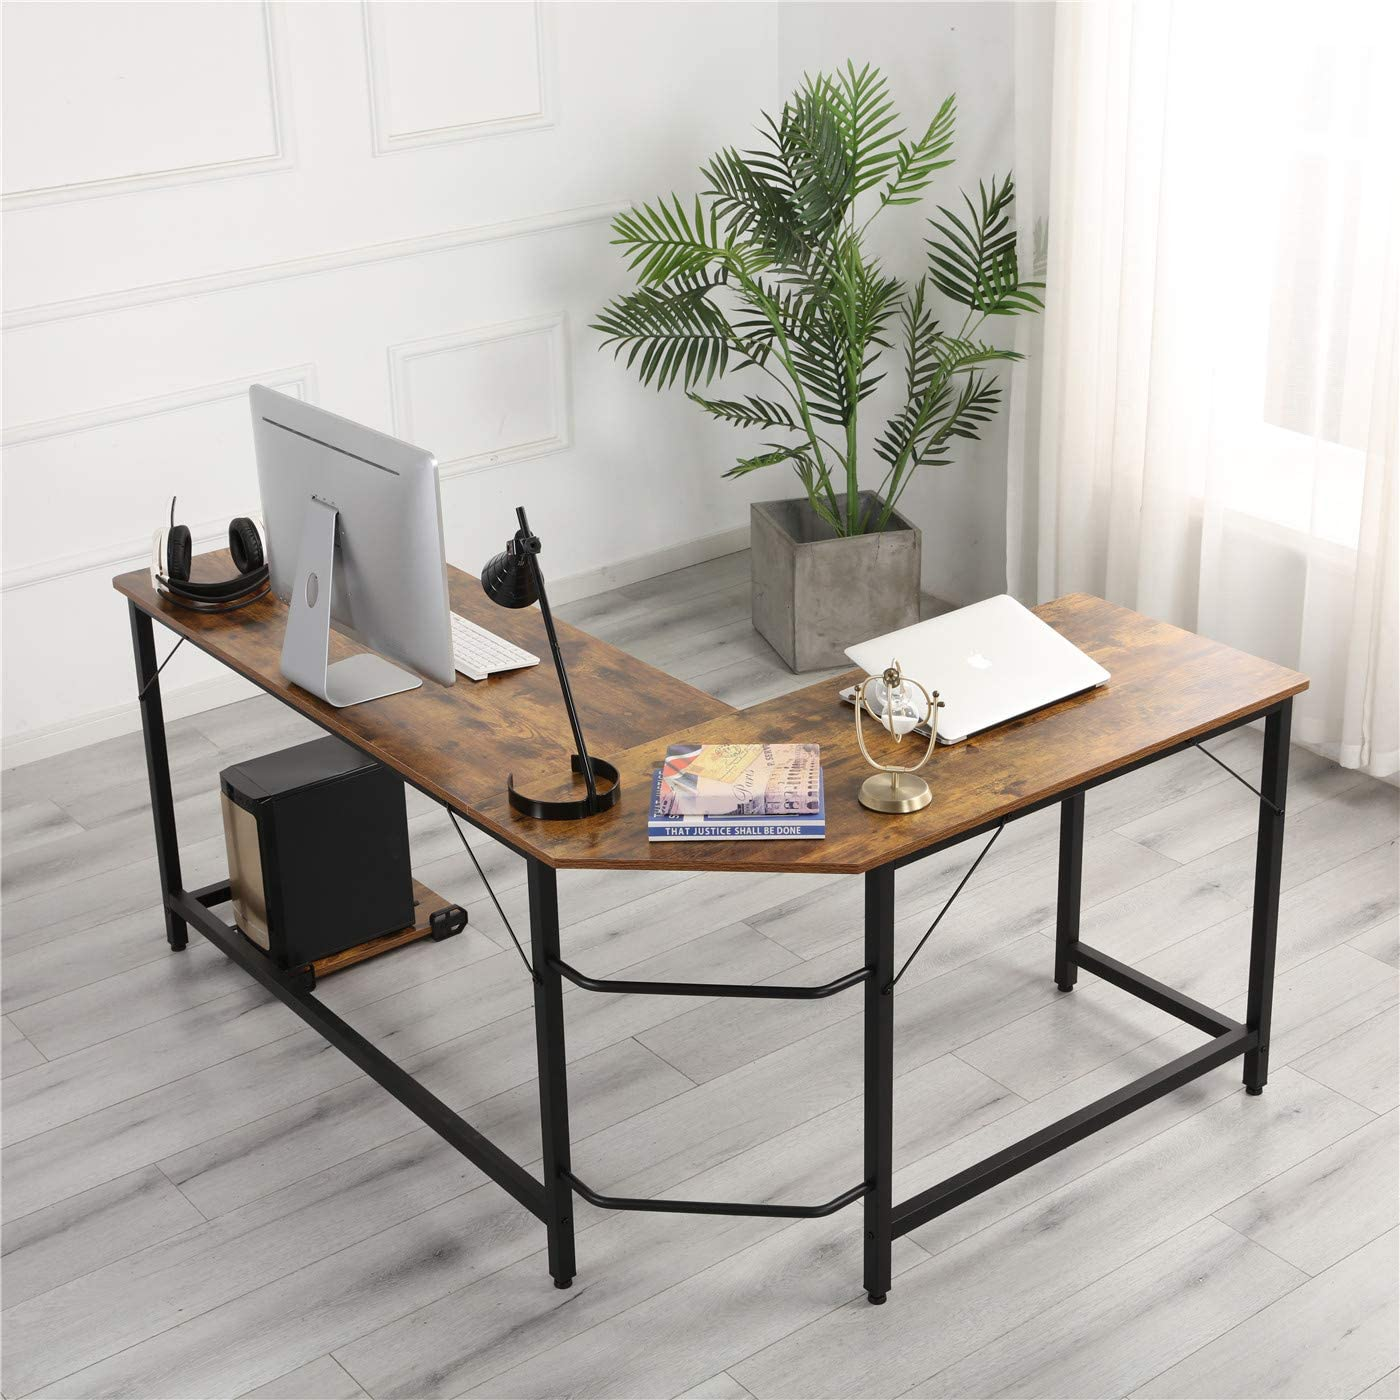 Homelody L-Shaped Corner Table Office Writing Workstation Computer Gaming Desk